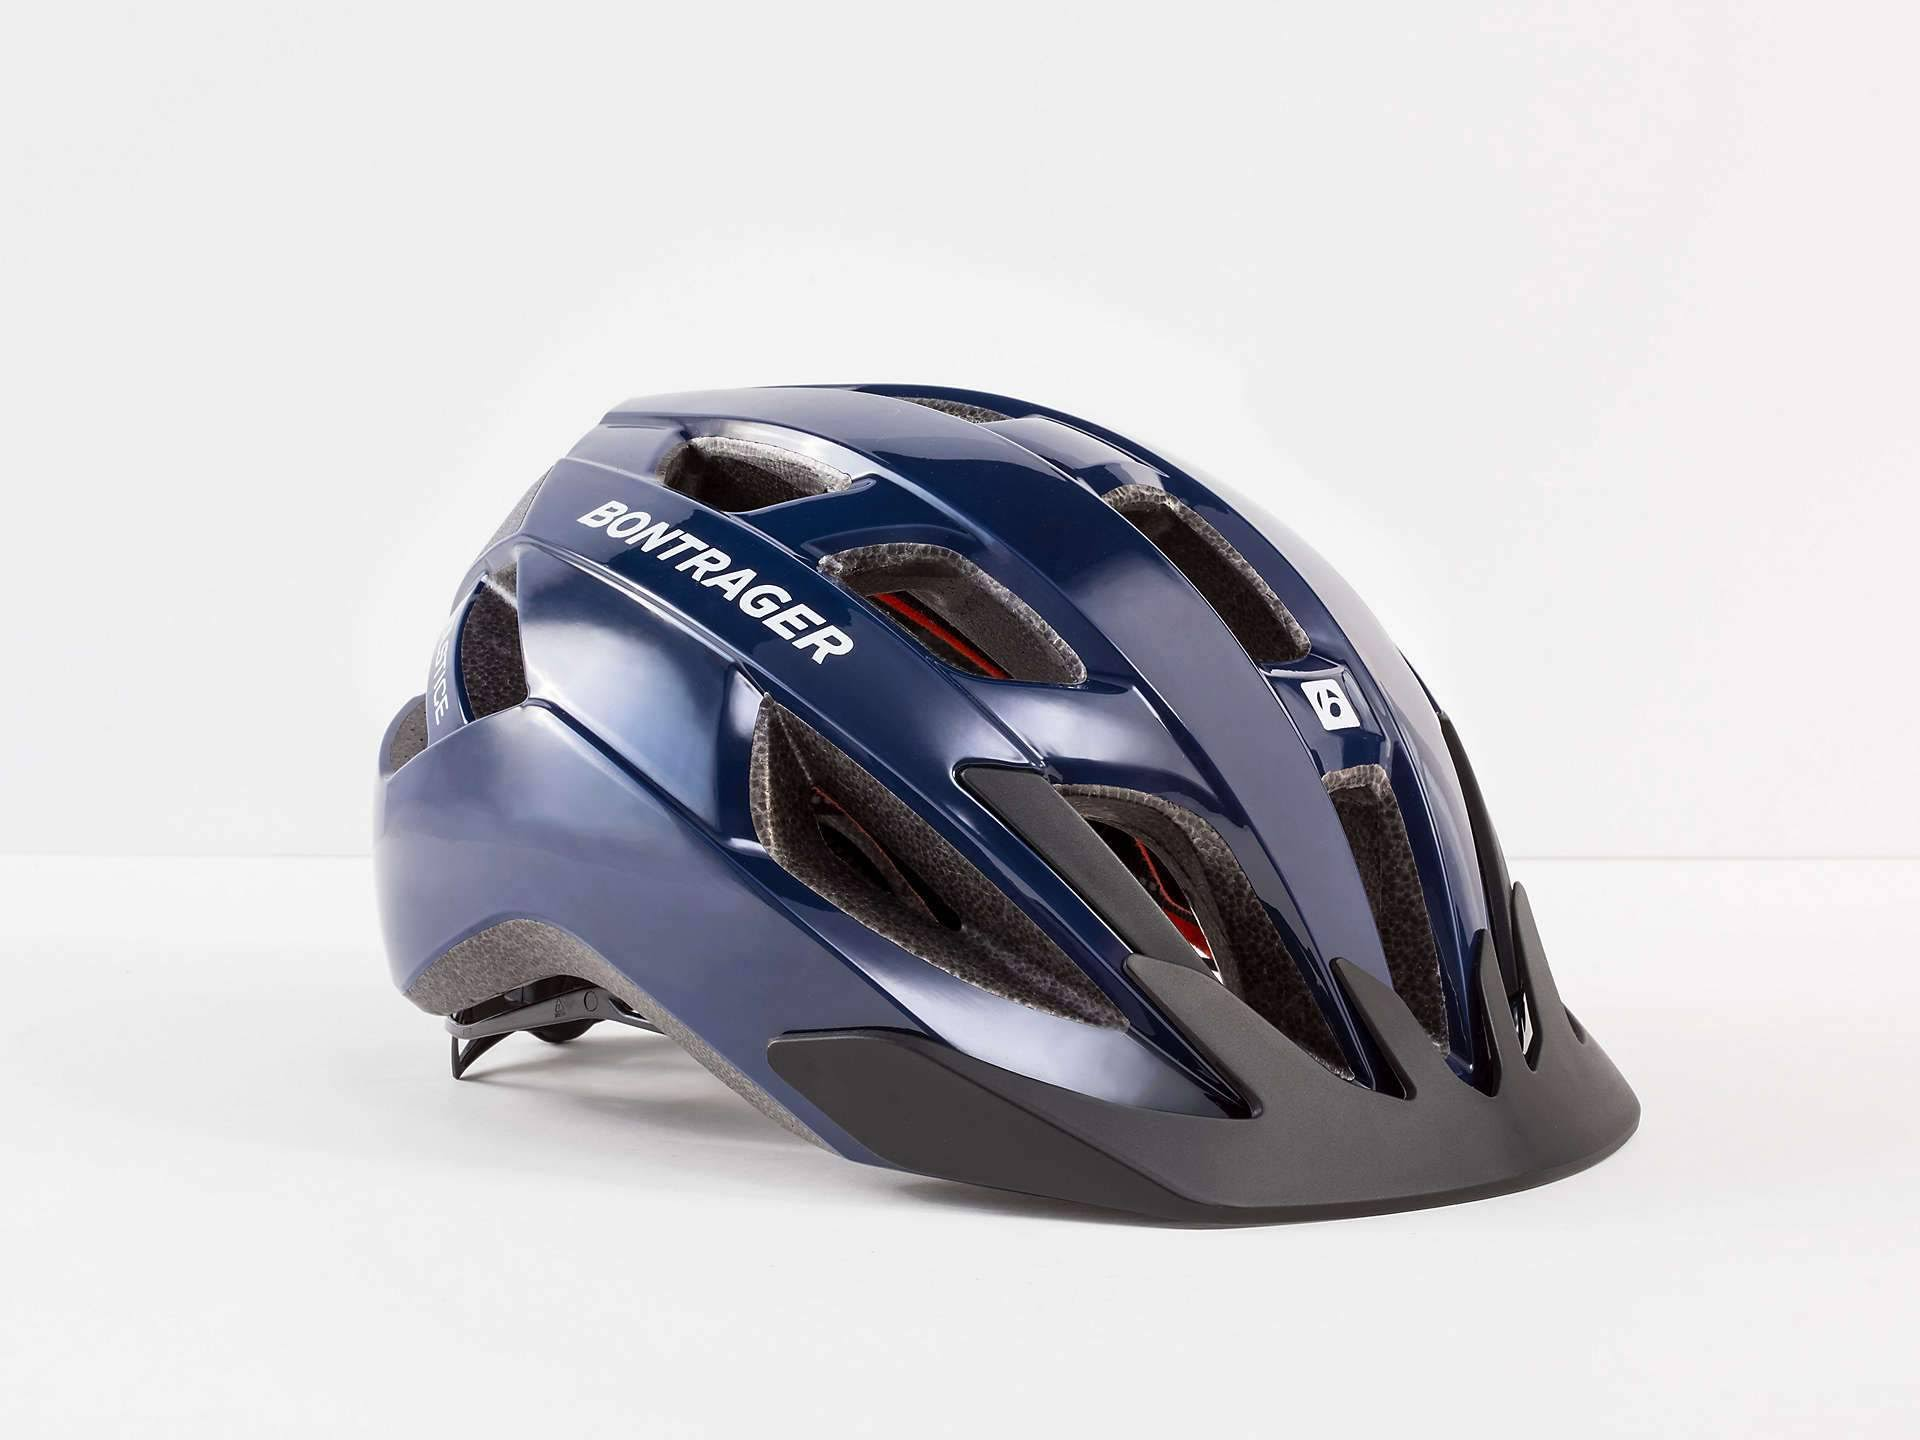 Bontrager Solstice Bike Helmet - Navy - Medium/Large